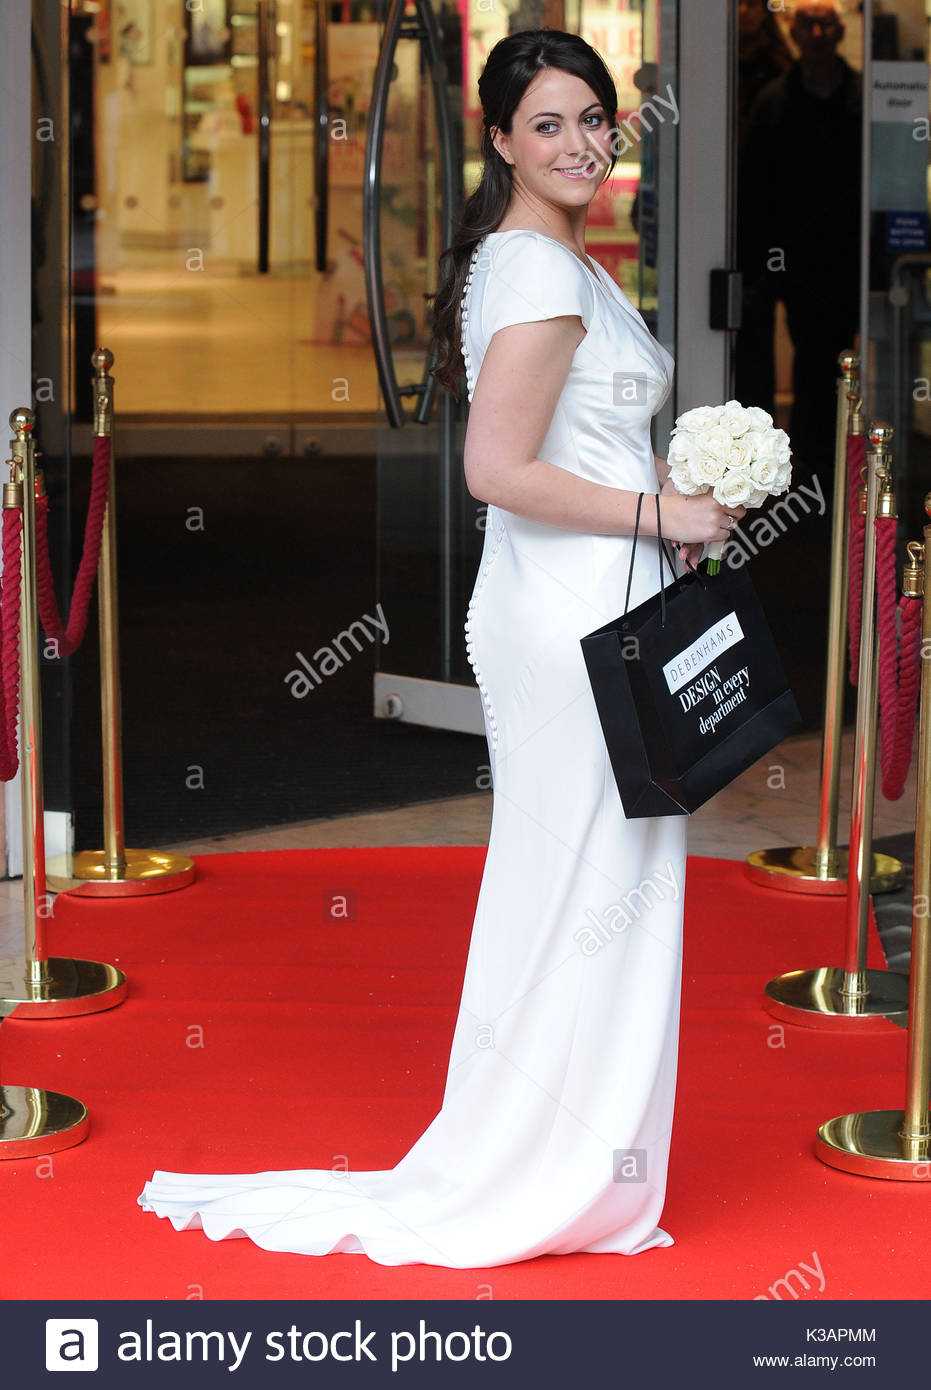 Pippa middleton inspired dress by debenhams debenhams launch debenhams launch their new dress inspired by pippa middletons royal wedding bridesmaids dress at debenhams oxford street in london uk on the 26th october ombrellifo Gallery